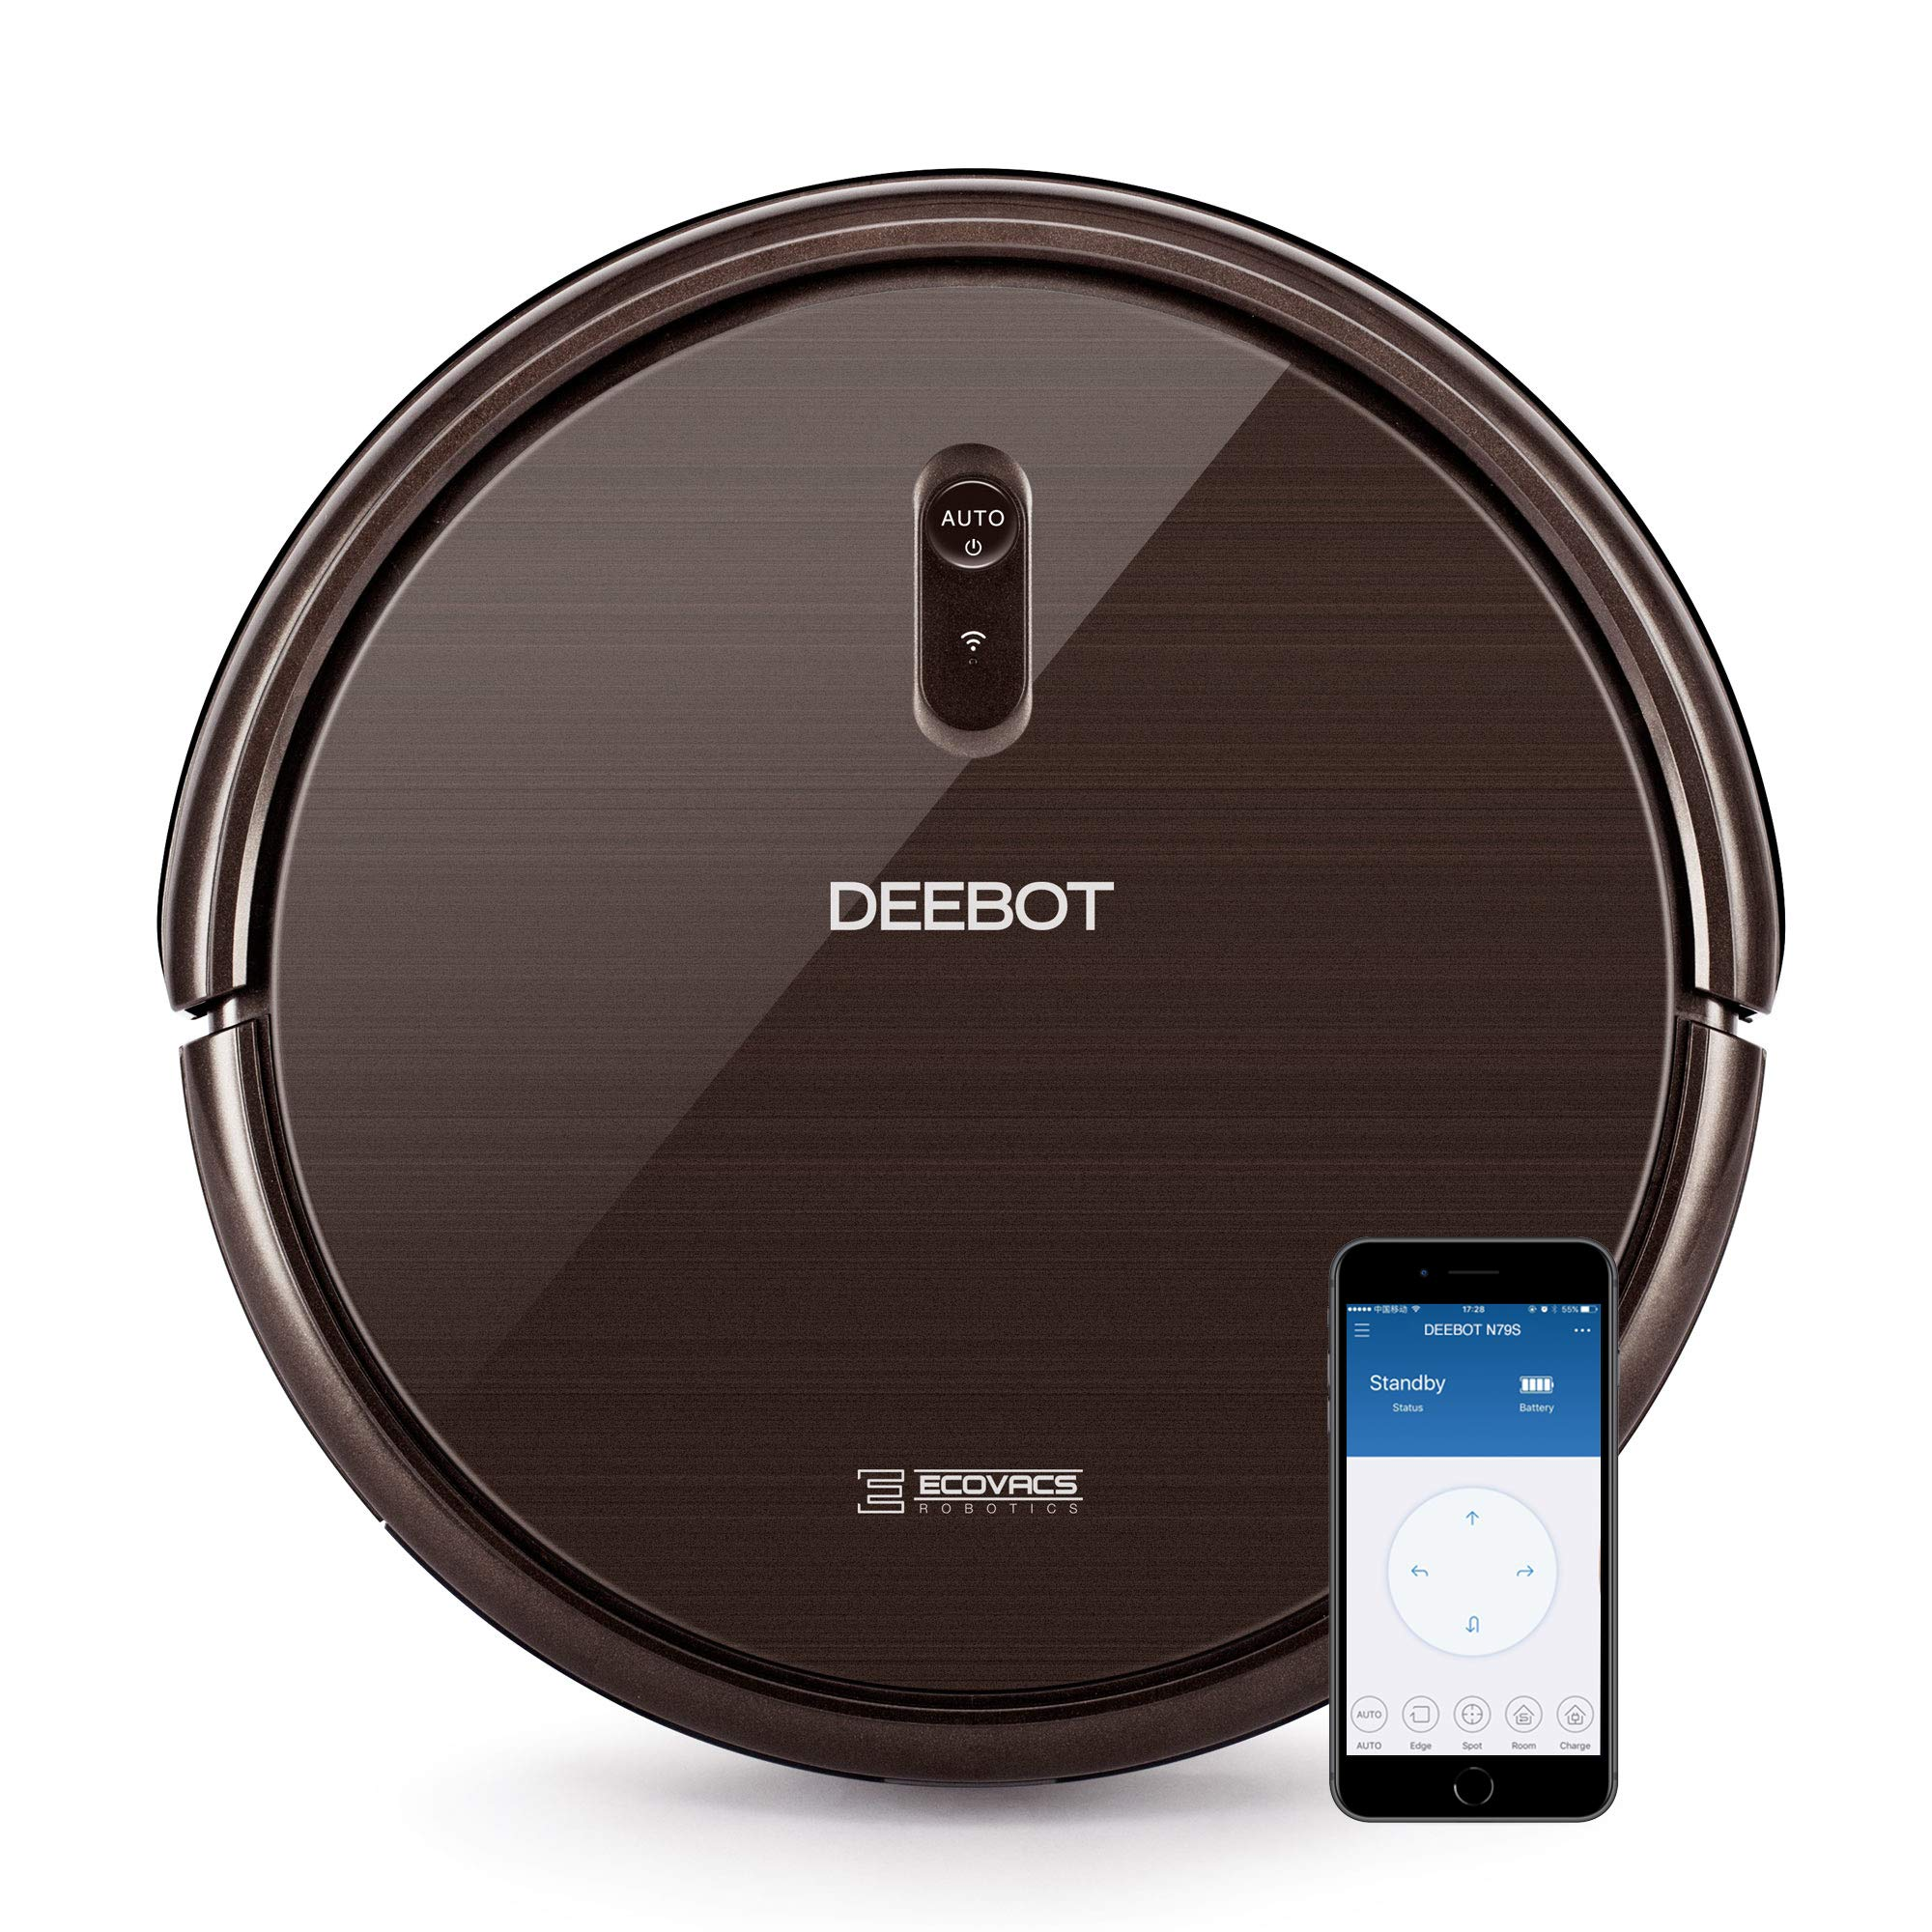 ECOVACS DEEBOT N79S Robot Vacuum Cleaner with Max Power Suction, Works with Alexa, App Controls, Self-Charging, Quiet, for Hard Floors & Carpets by ECOVACS